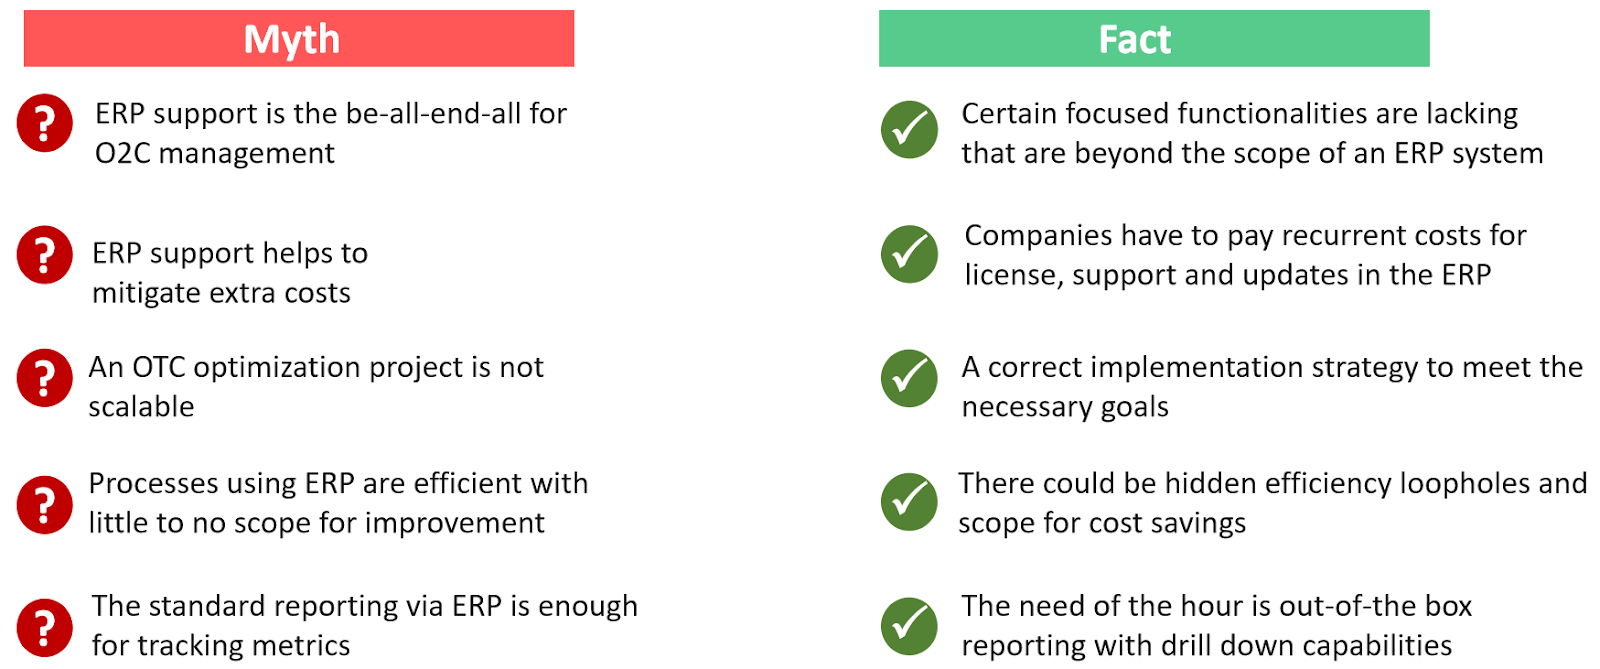 Myths and Facts about ERP